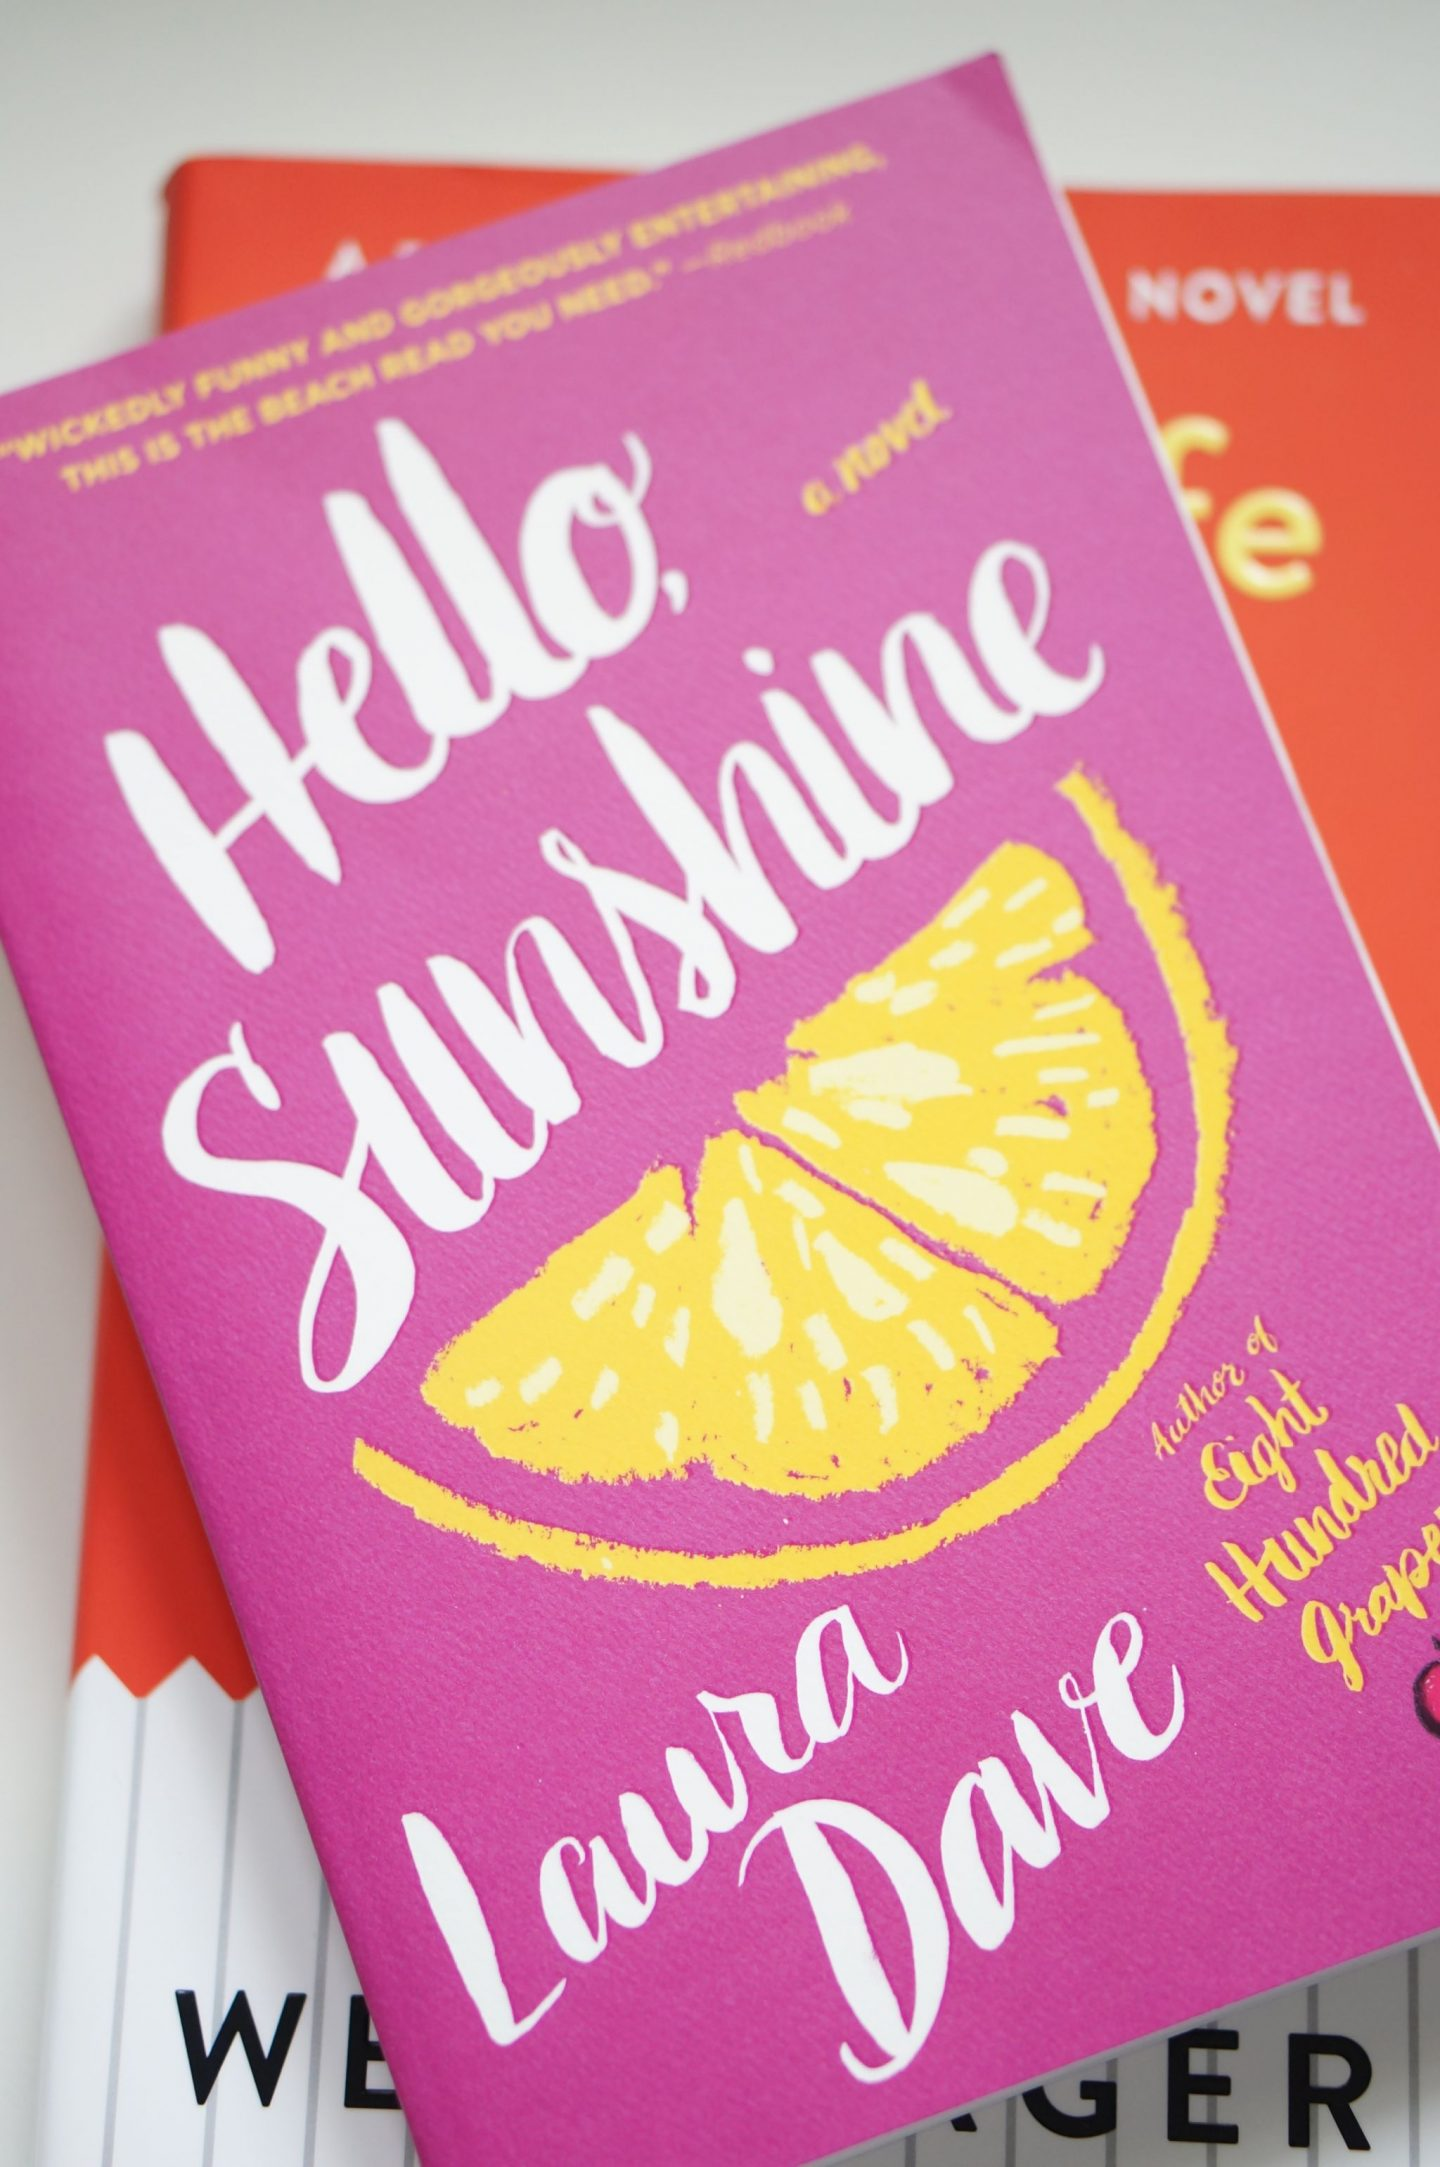 Popular North Carolina style blogger Rebecca Lately shares her review of Hello Sunshine by Laura Dave. If you love dramatic page-turners, read her review!